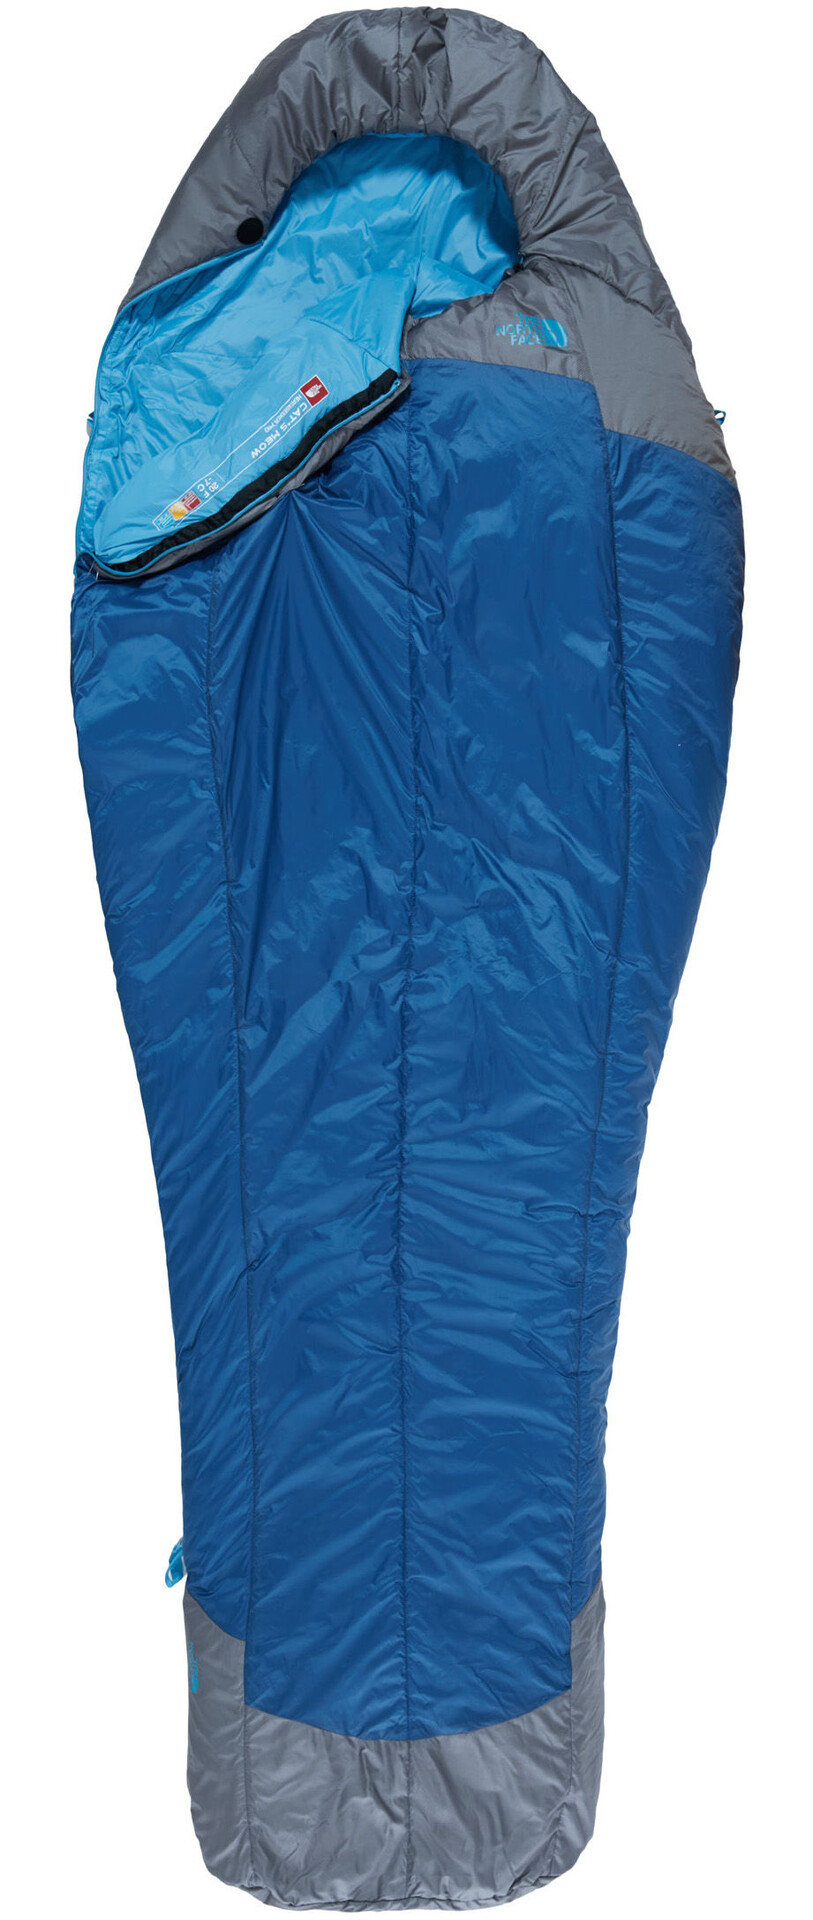 The North Face Cat'S Cat'S Cat'S Meow Sleeping Bag Regular Ens Blu/Zin Gry 61d2aa